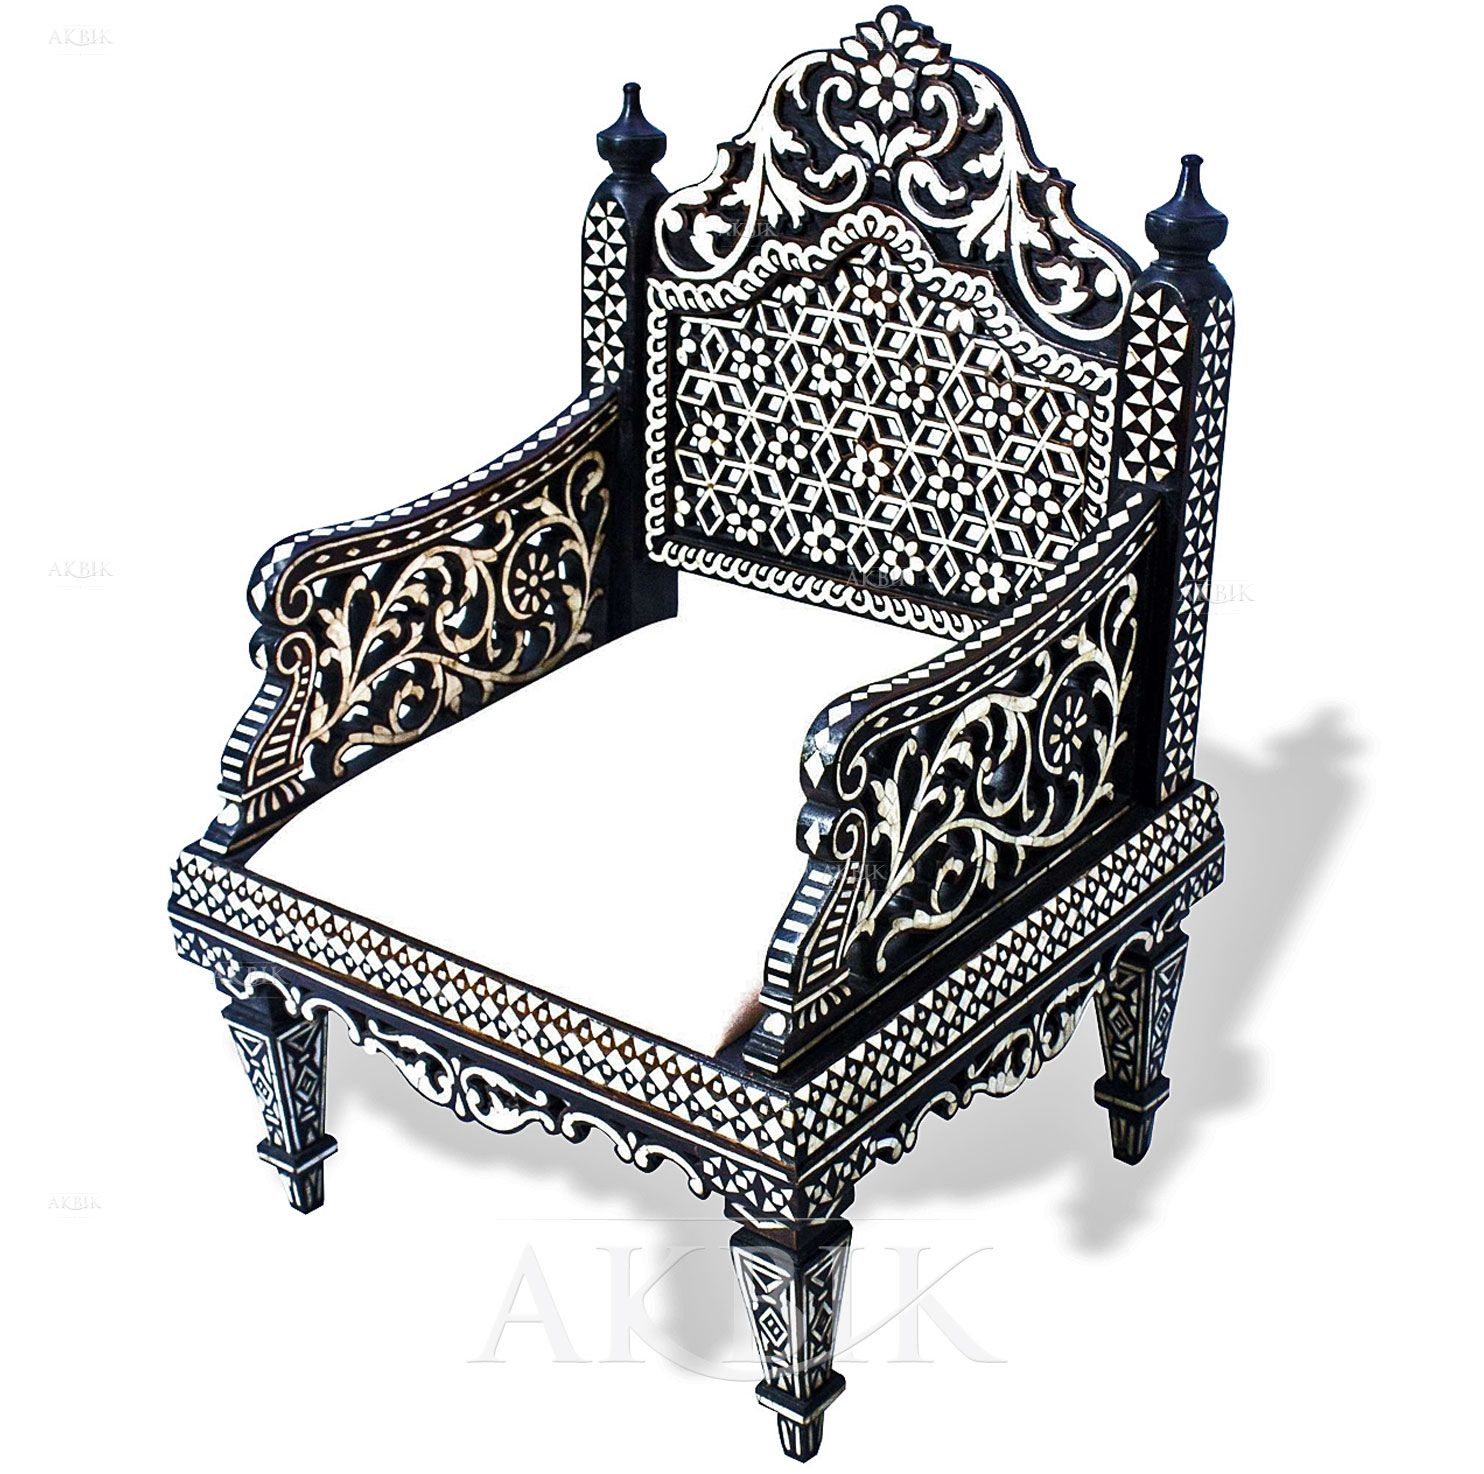 96121   Arabian Moroccan Style Chair Inlaid With Mother Of Pearl